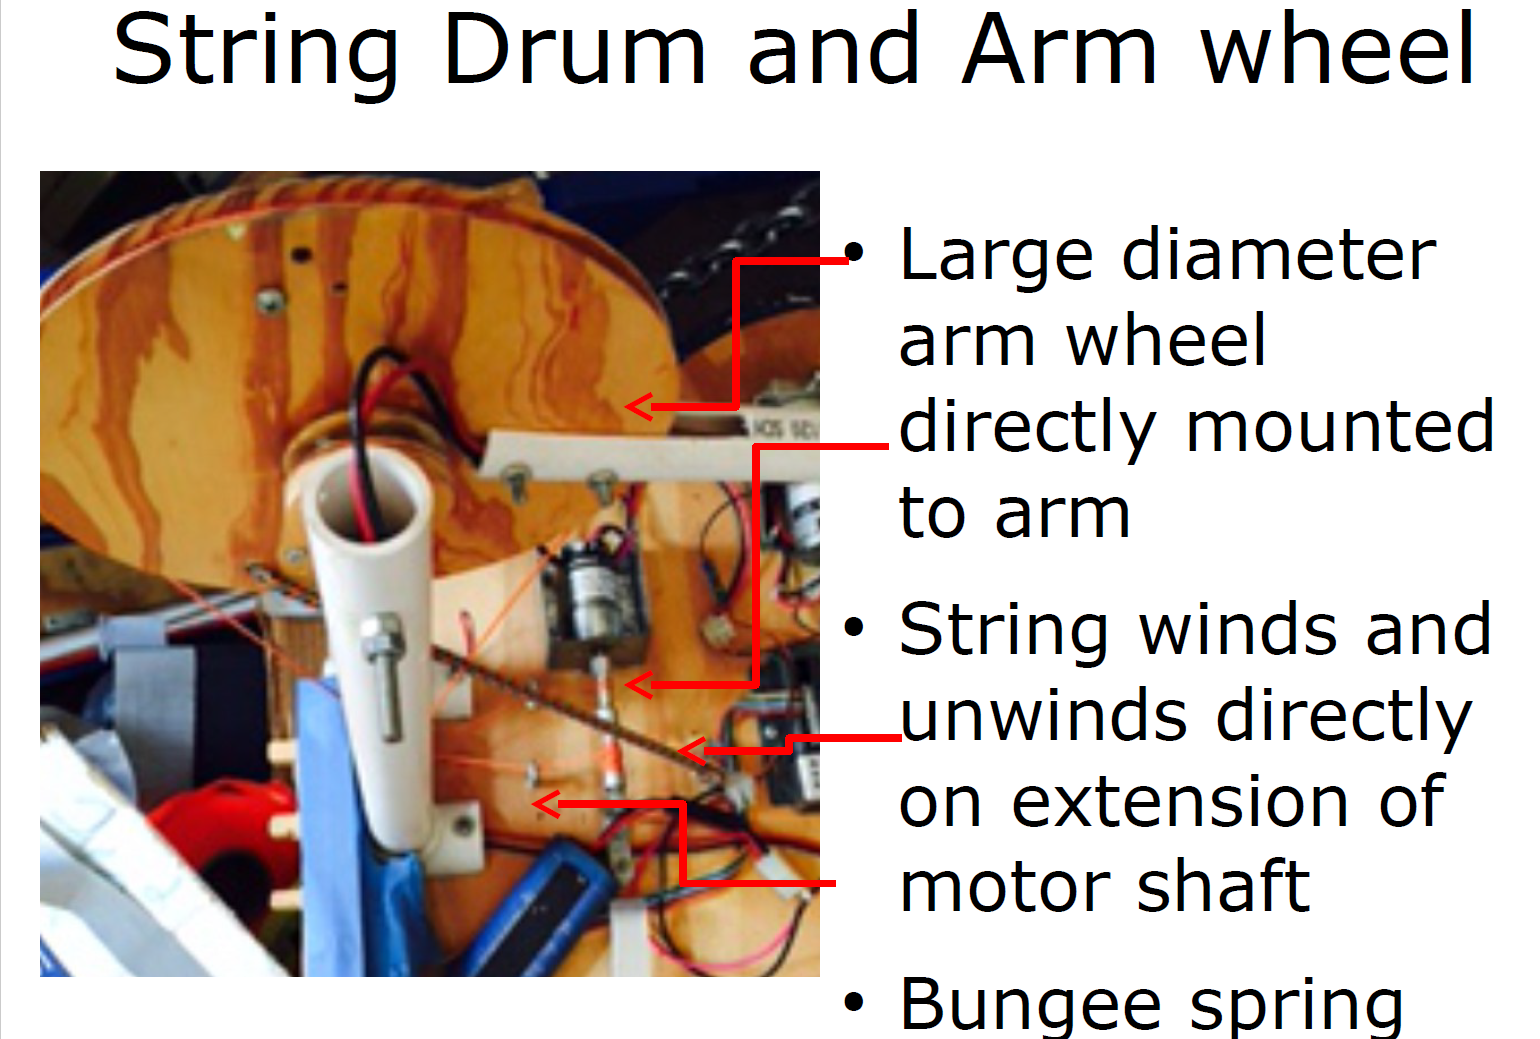 arm_wheel.PNG